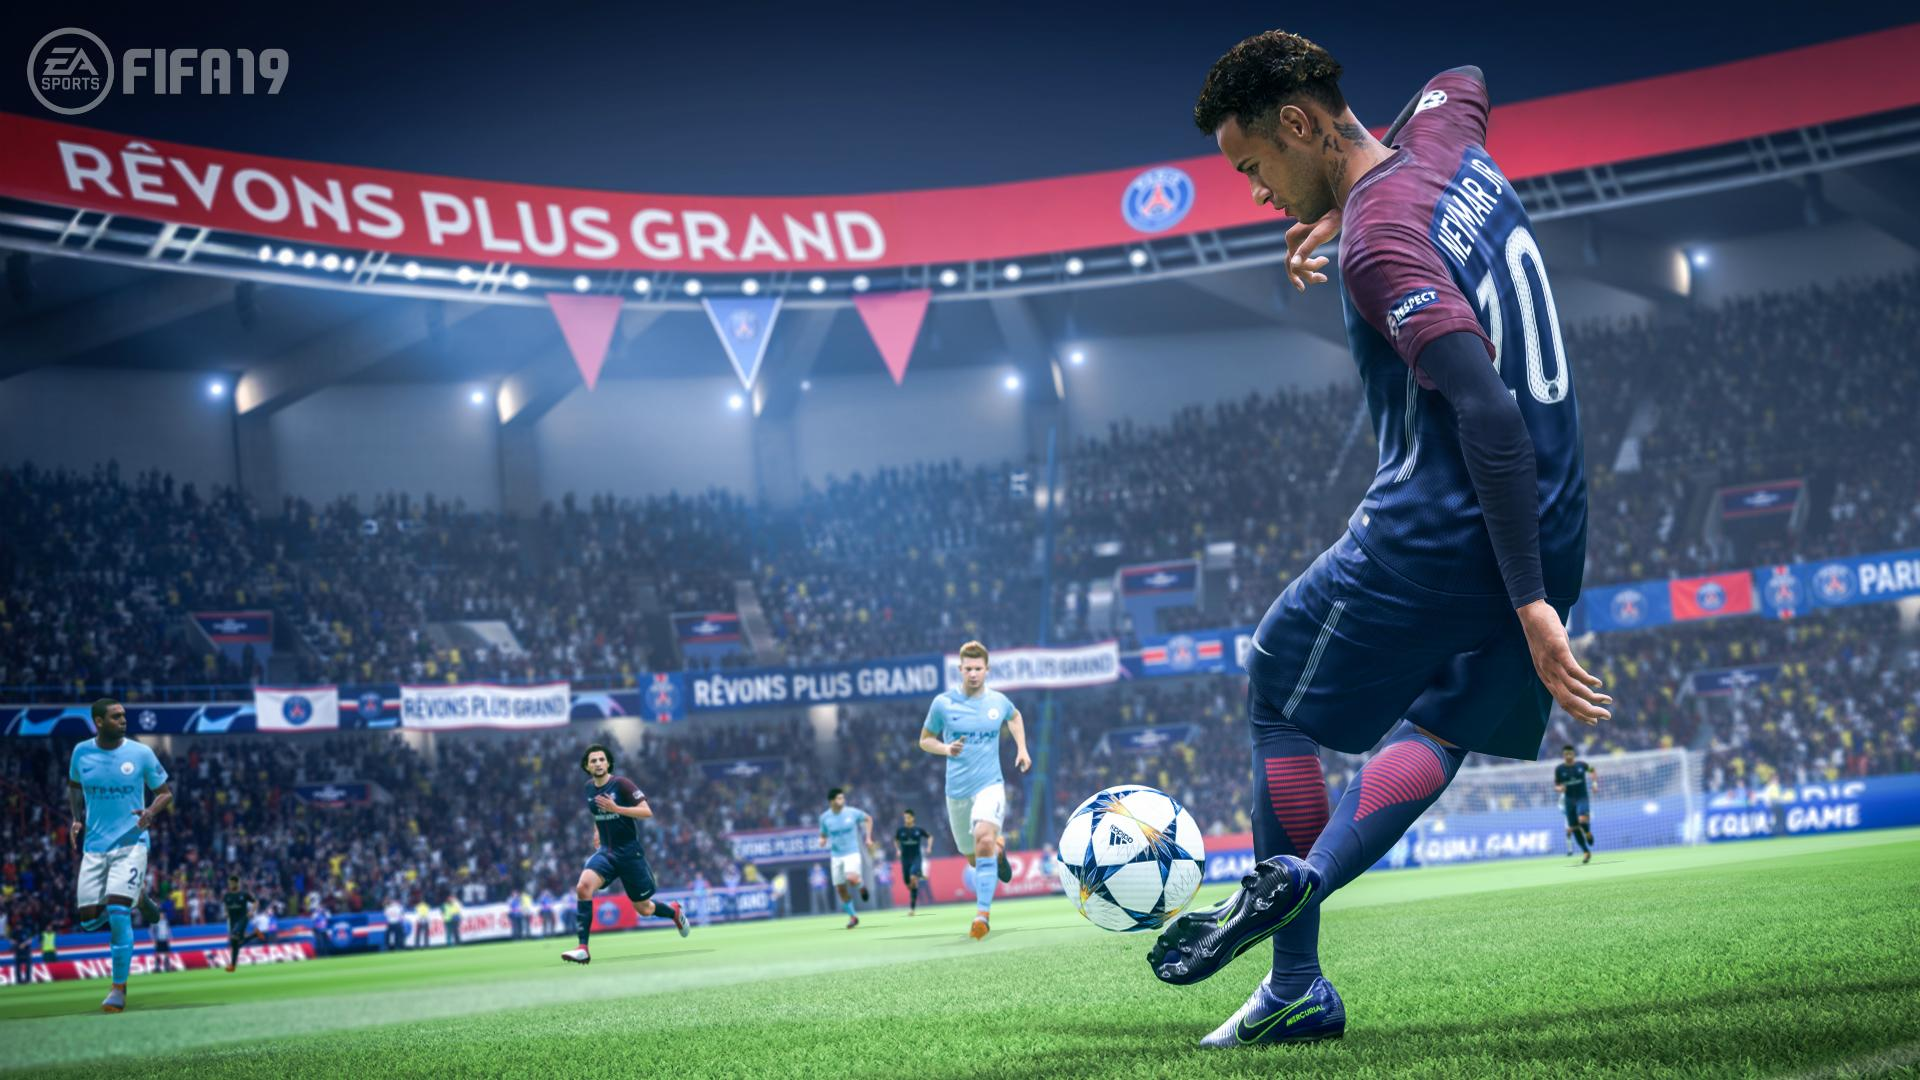 FIFA 19 arrives in a little over a month's time